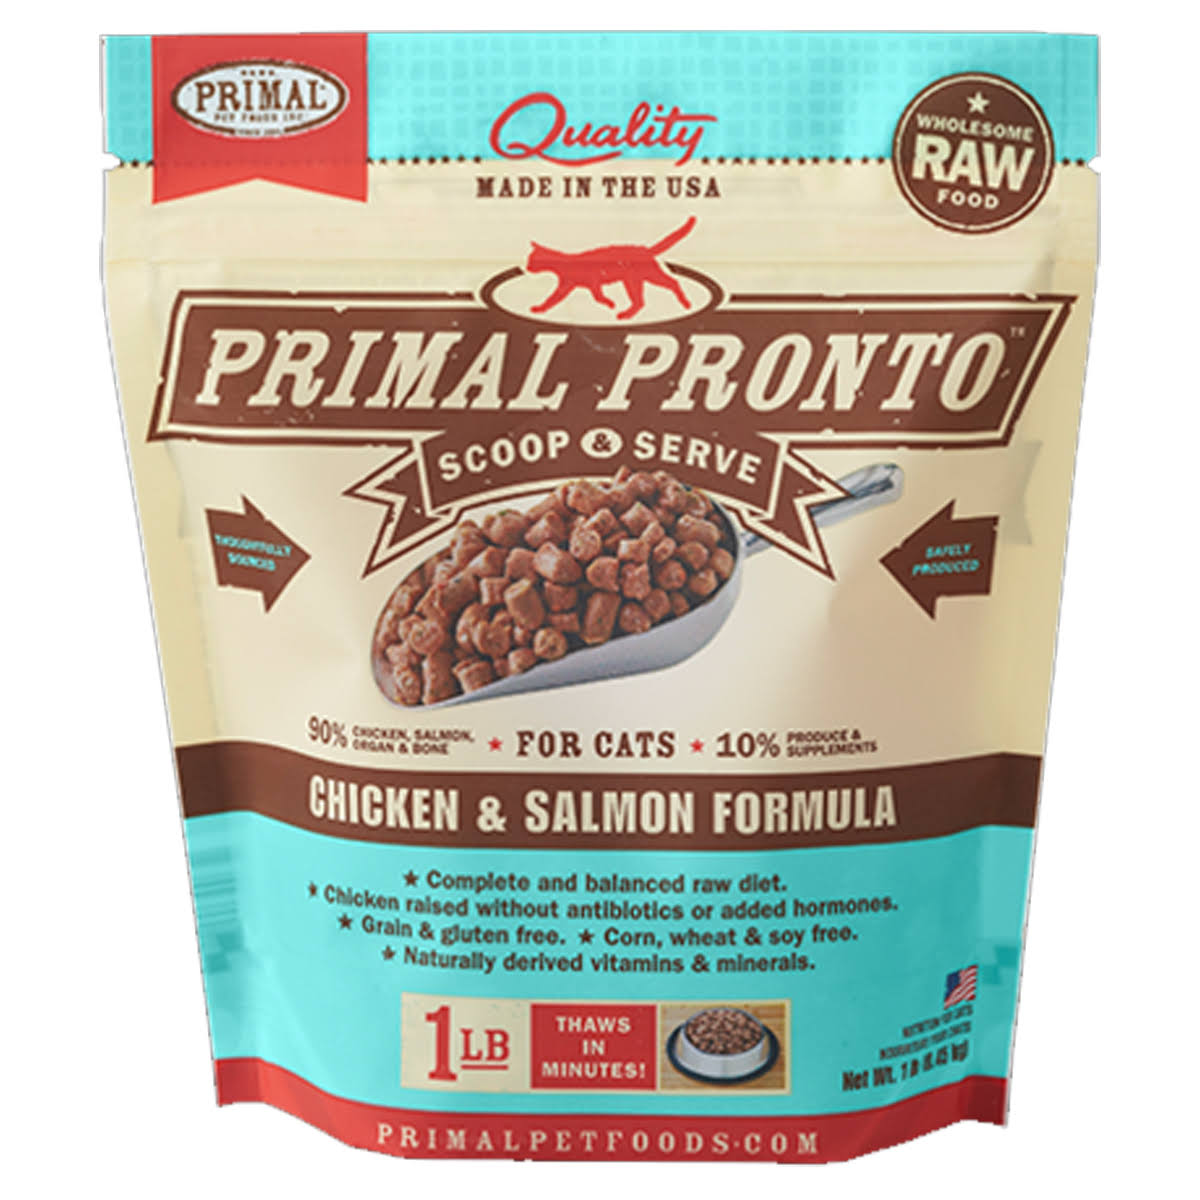 Primal Pronto Formula for Cats - Chicken & Salmon